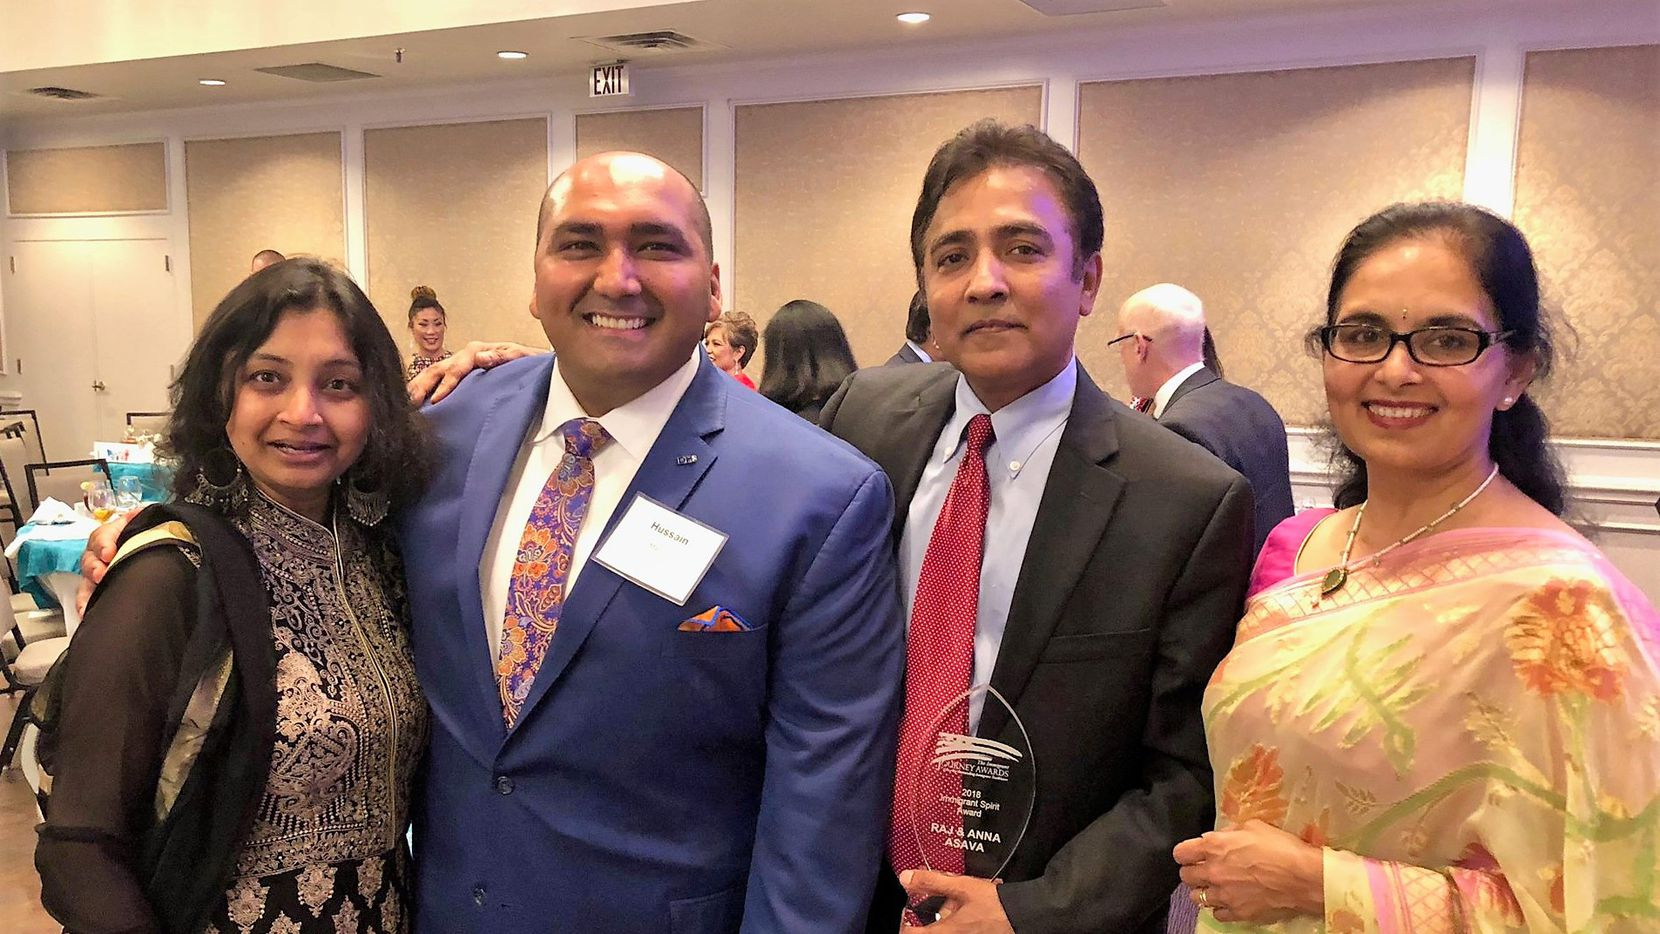 From left, Sejal Desai and Hussain Manjee with Immigrant Journey Award winners Raj Asava and Aradhana Asava at the 2018 Immigrant Journey Awards Gala on Friday at the Clubs of Prestonwood in Dallas. (Facebook)